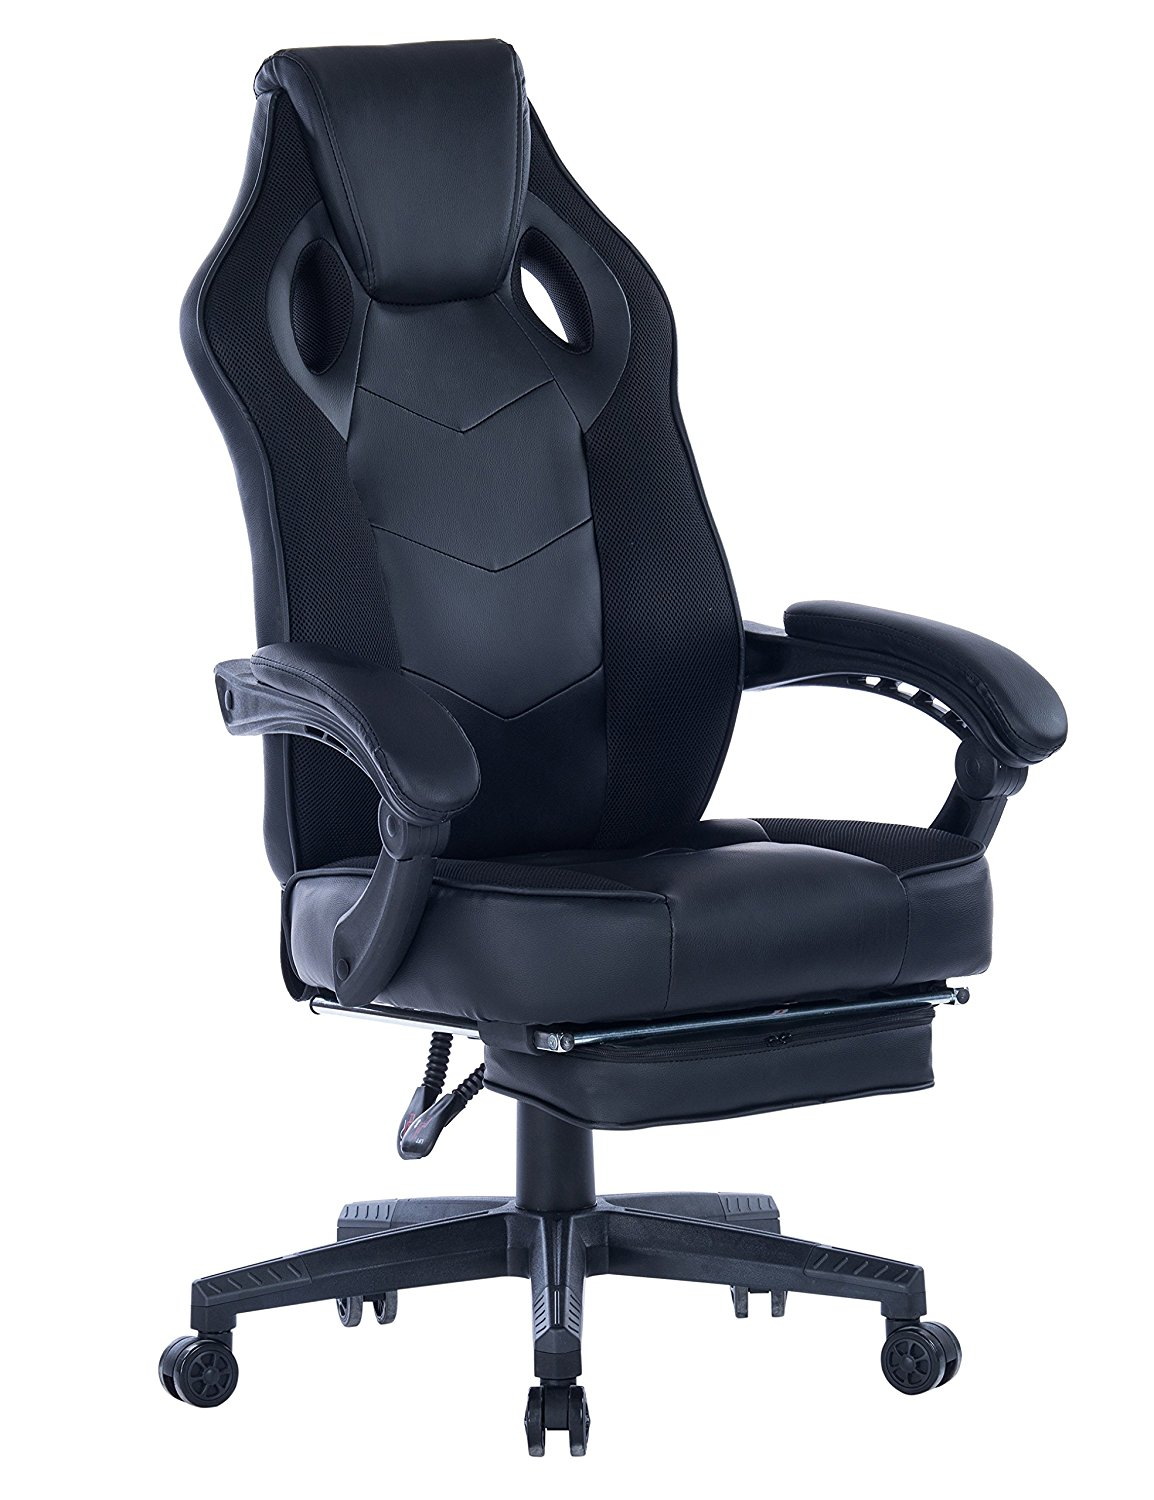 desk chair edmonton best executive chairs 2018 zara recline rocking used office buy